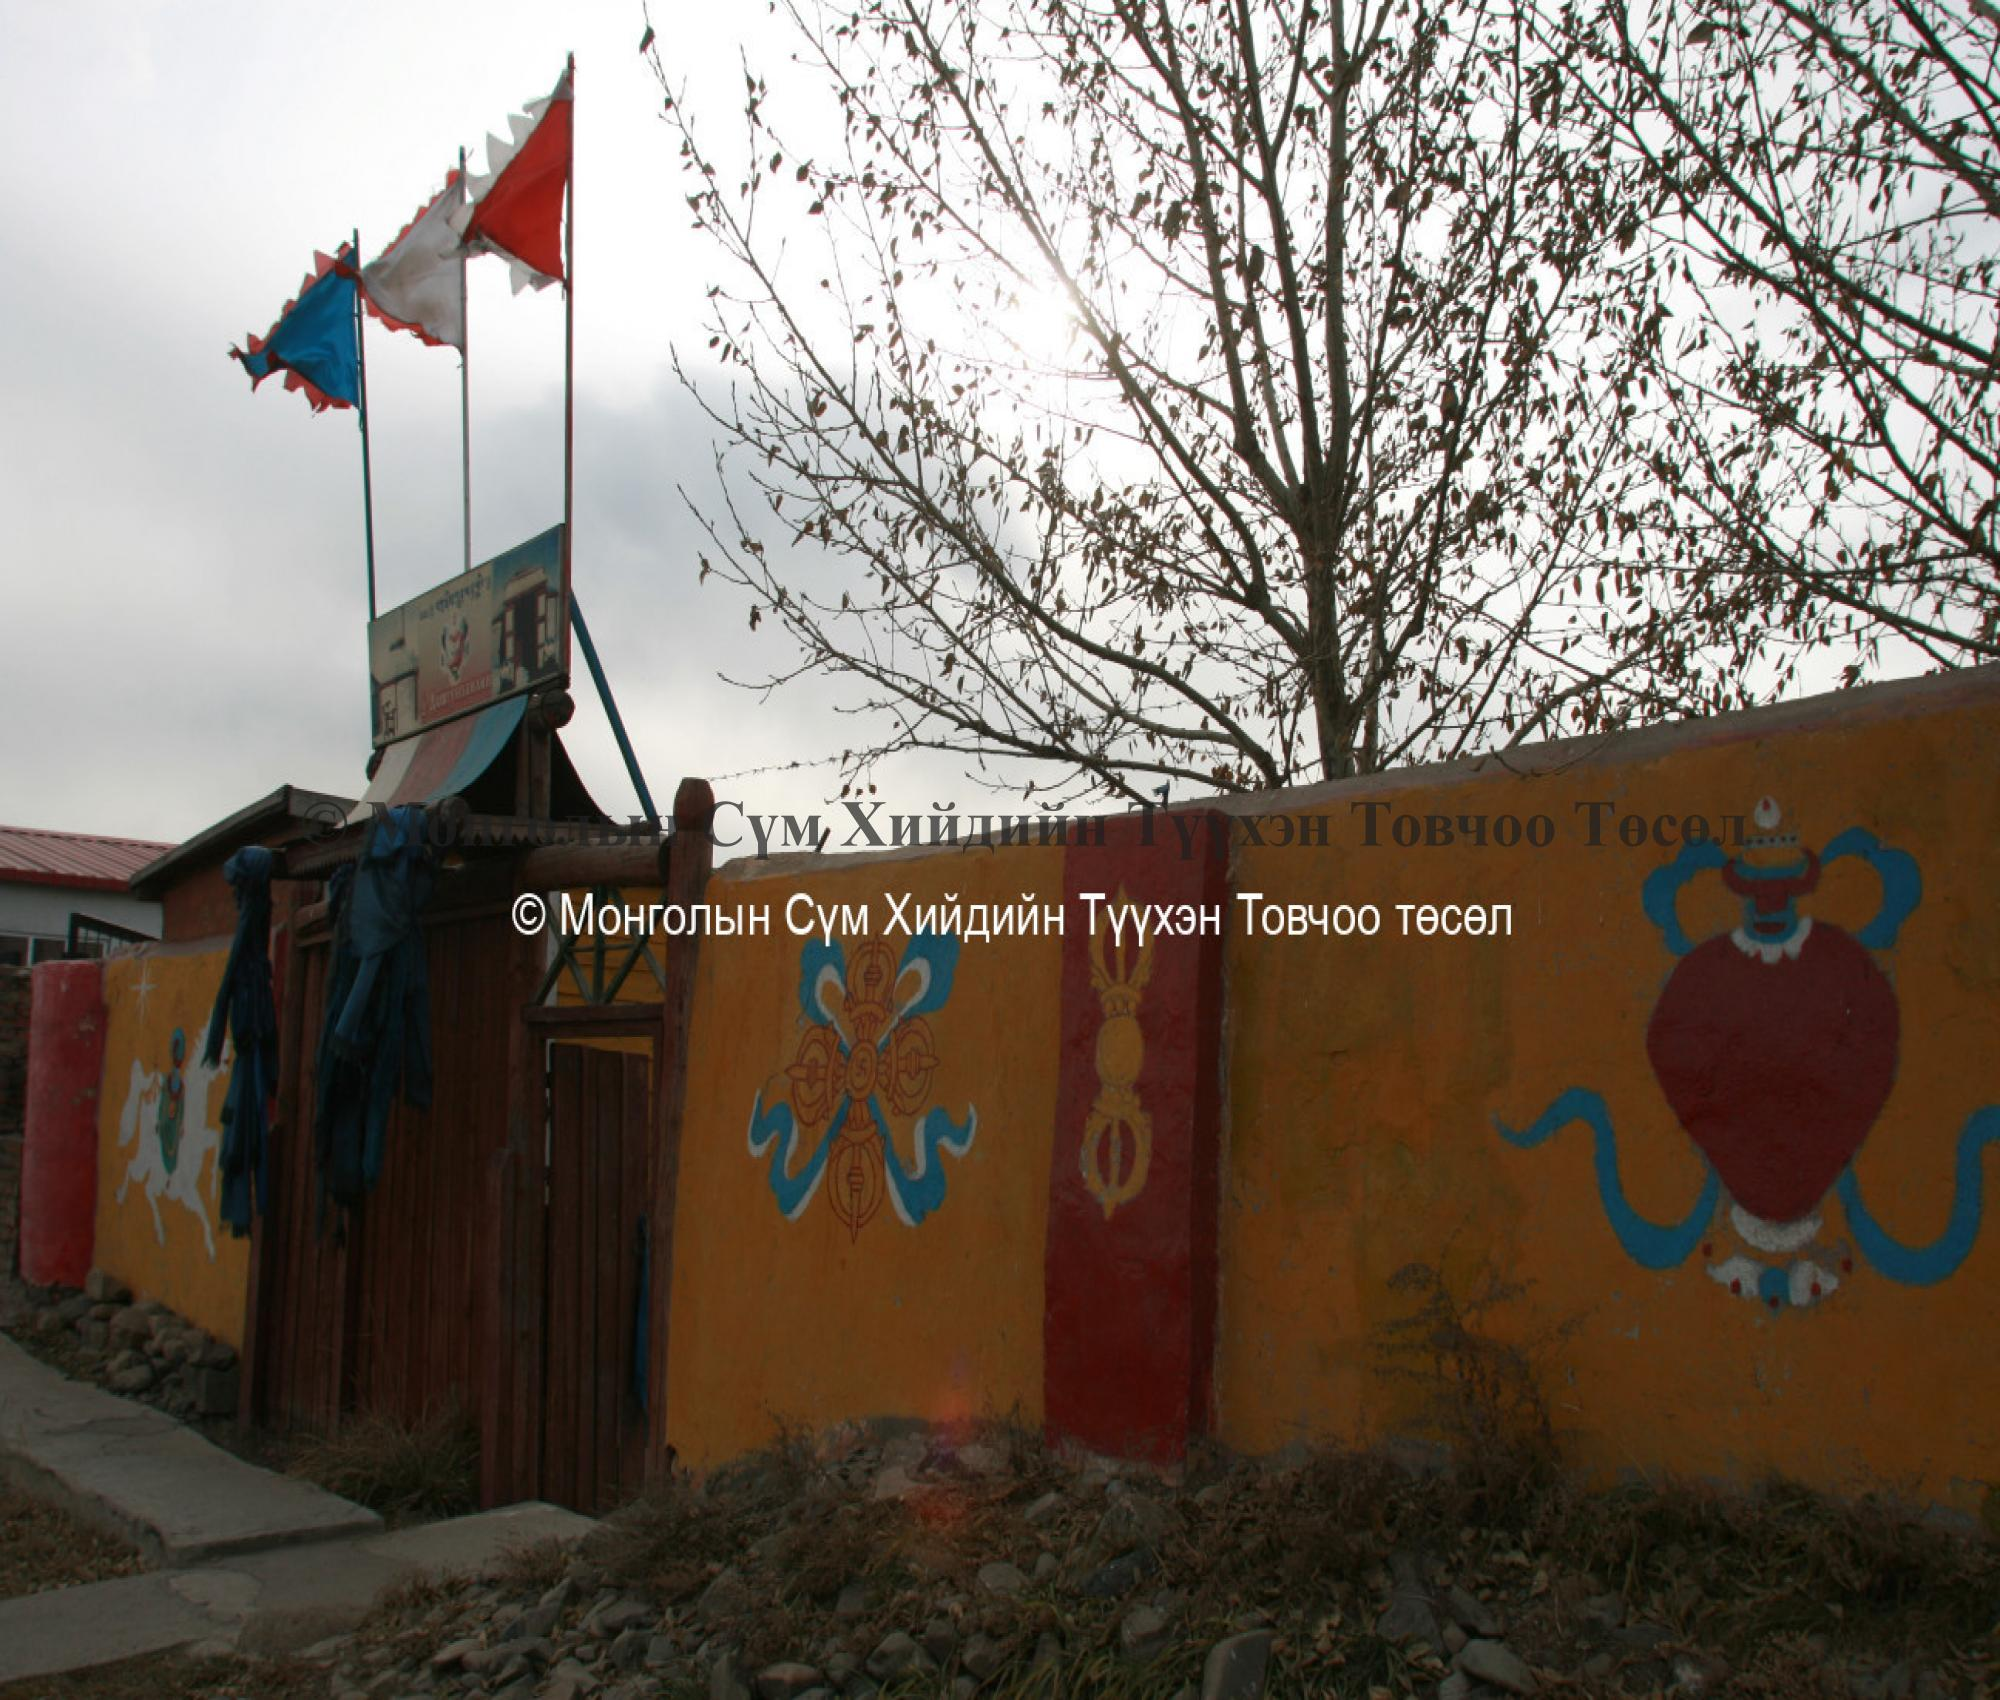 Buddhist symbols decorating the wall surrounding t